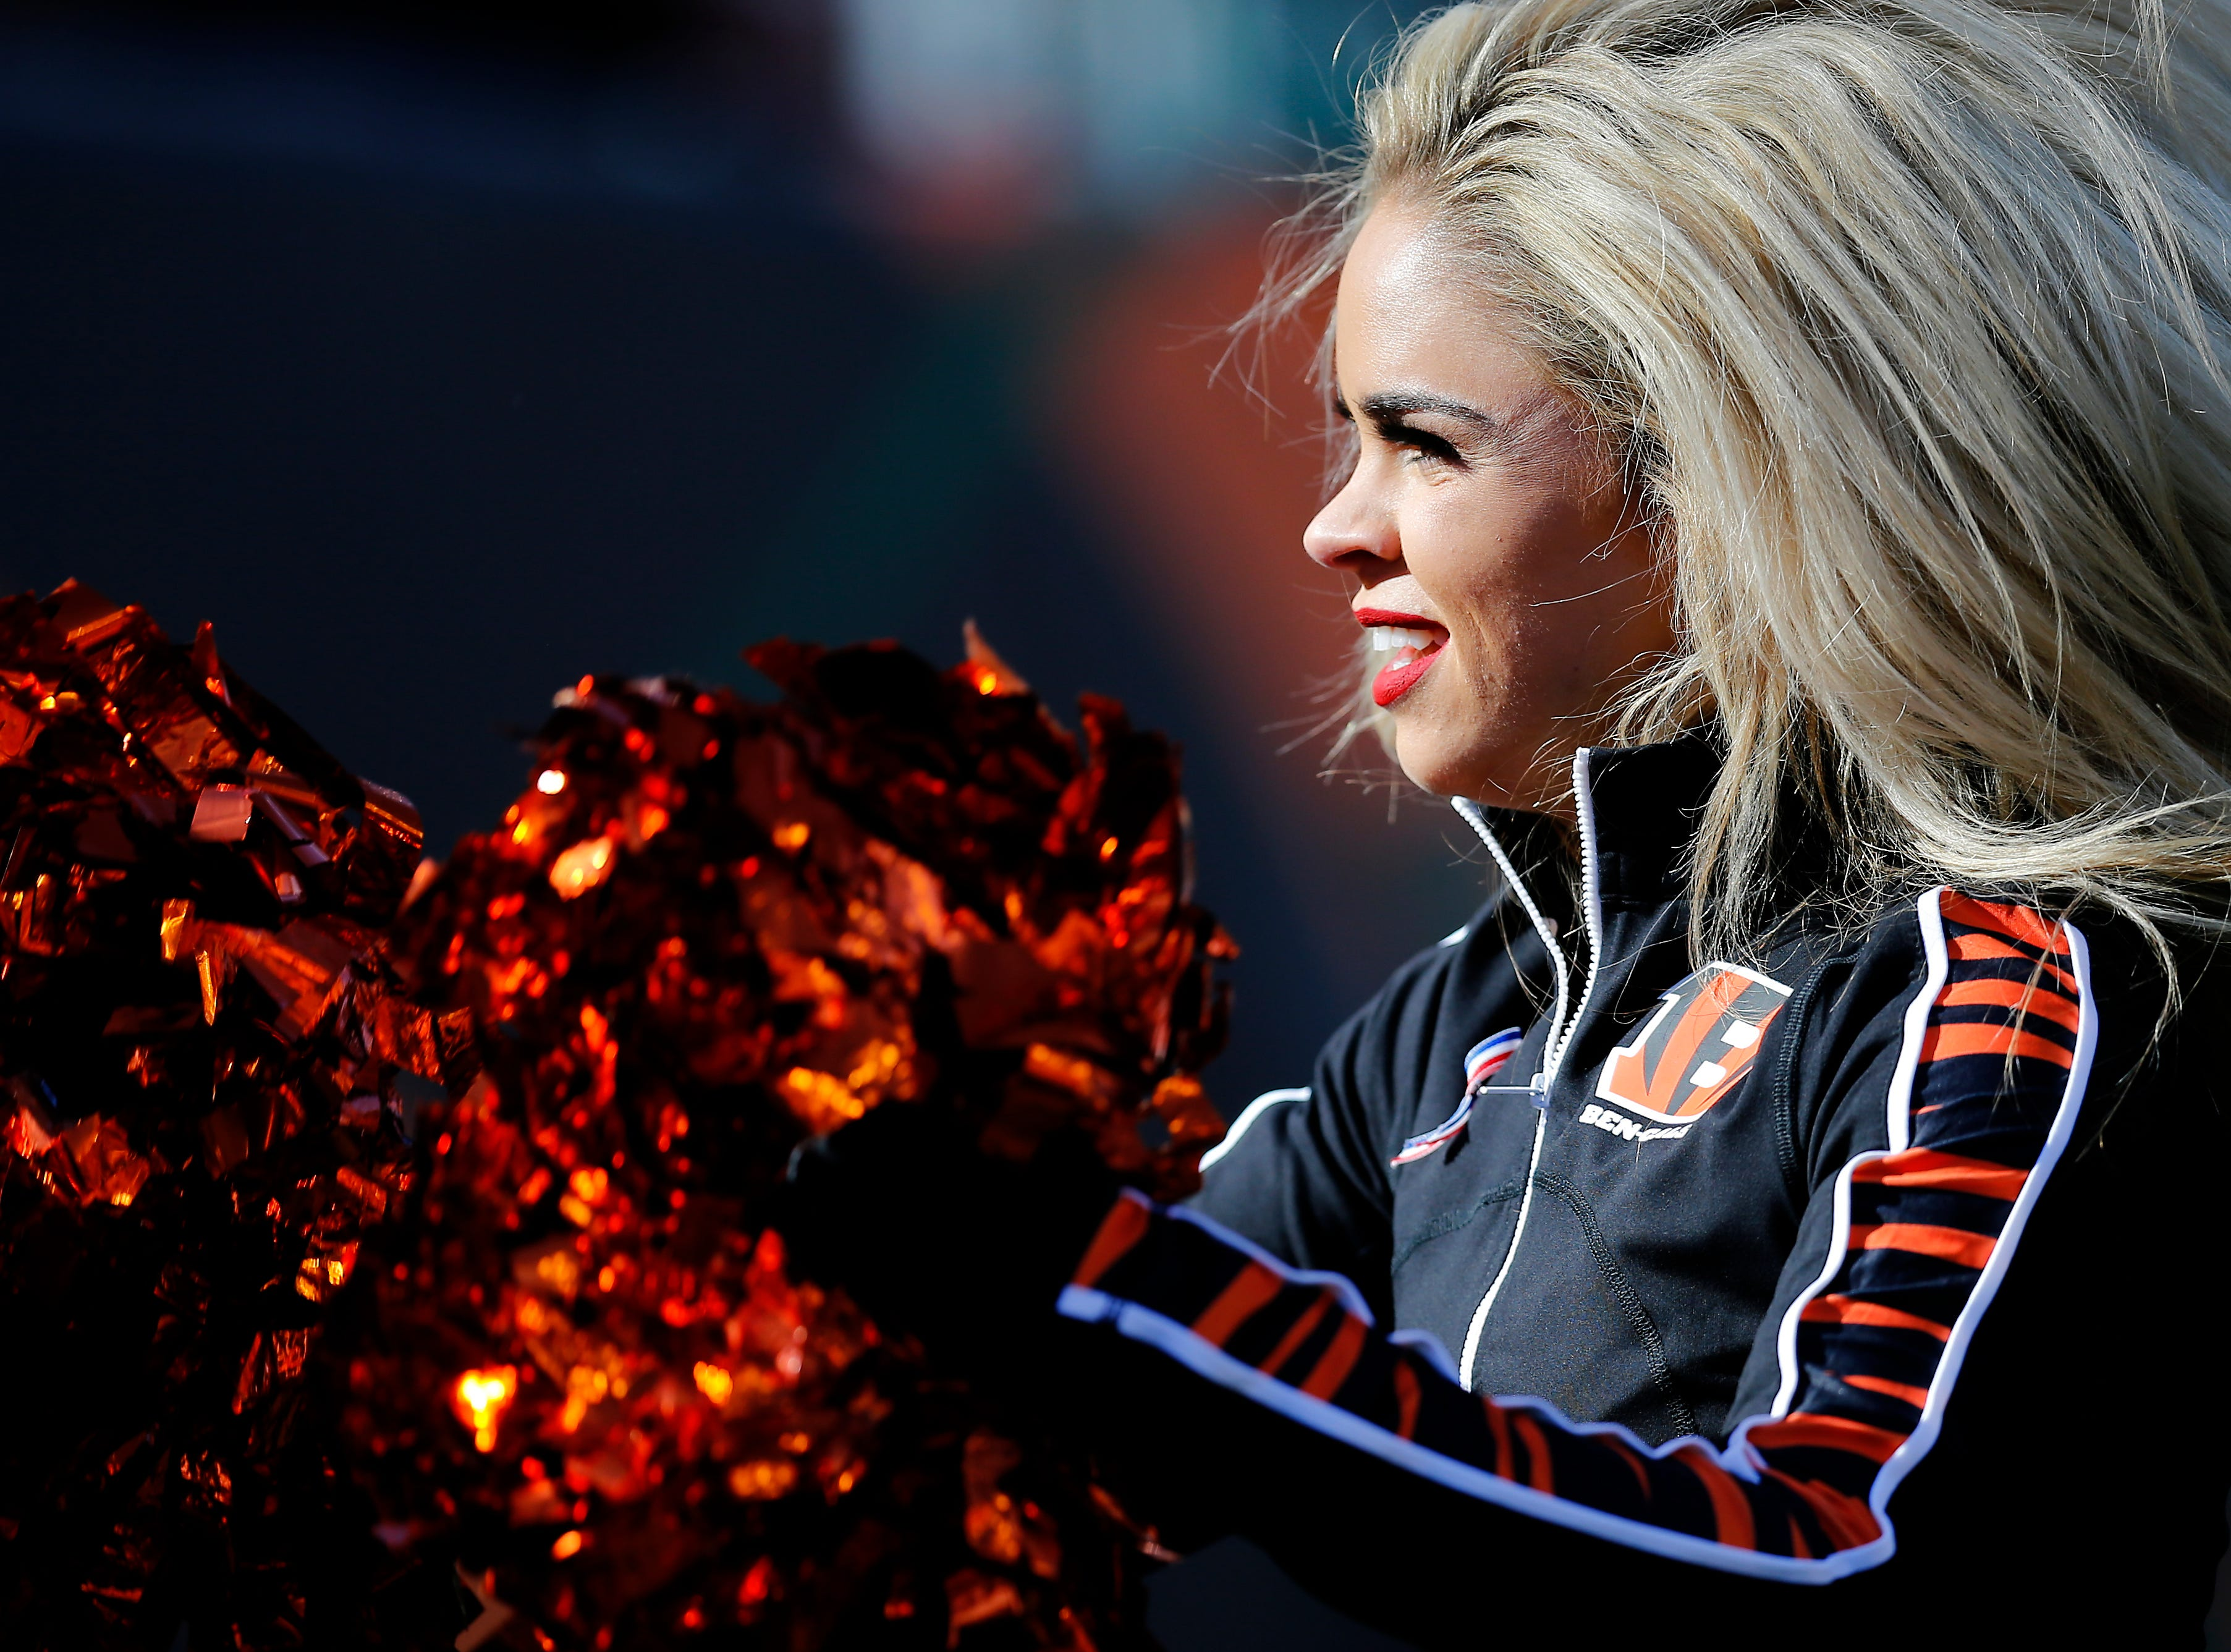 The Ben-Gals cheerleaders perform on the sidelines in the first quarter of the NFL Week 10 game between the Cincinnati Bengals and the New Orleans Saints at Paul Brown Stadium in downtown Cincinnati on Sunday, Nov. 11, 2018. The Saints led 35-7 at halftime.